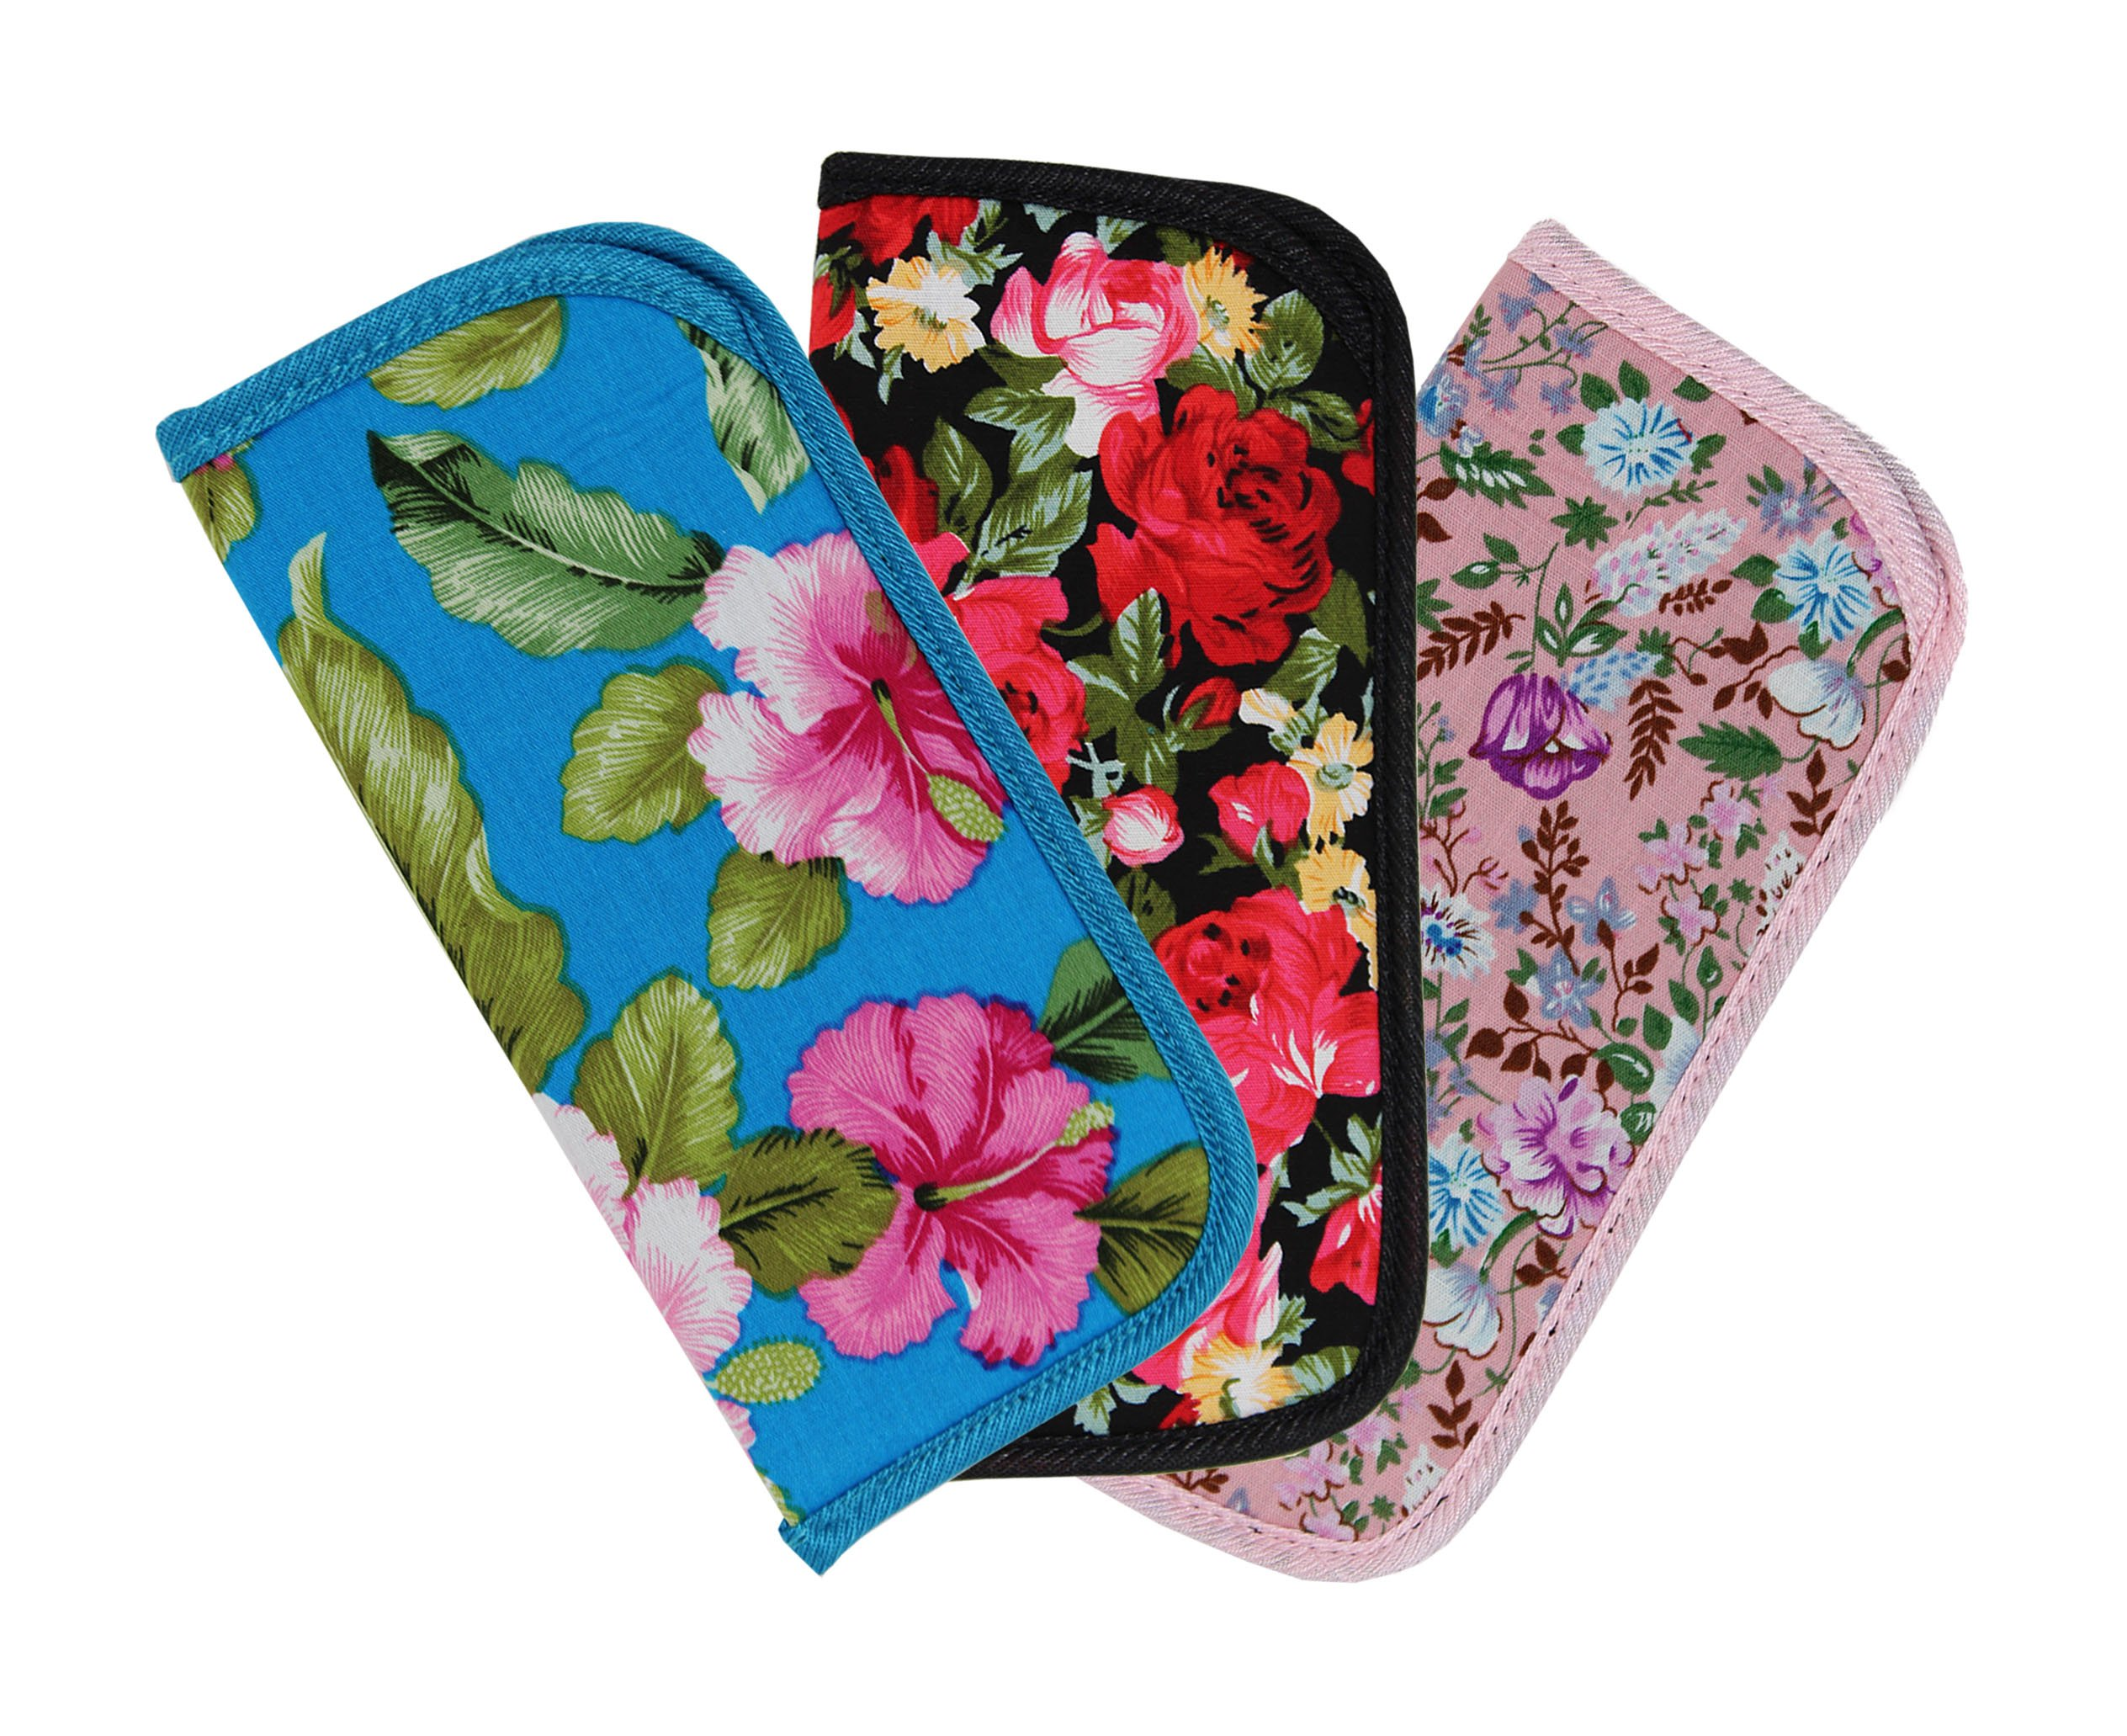 3 Pack Soft Slip In Eyeglass Case for Women Glasses, Reading Glasses, or Sunglasses – Fabric Floral Case by Ron's Optical